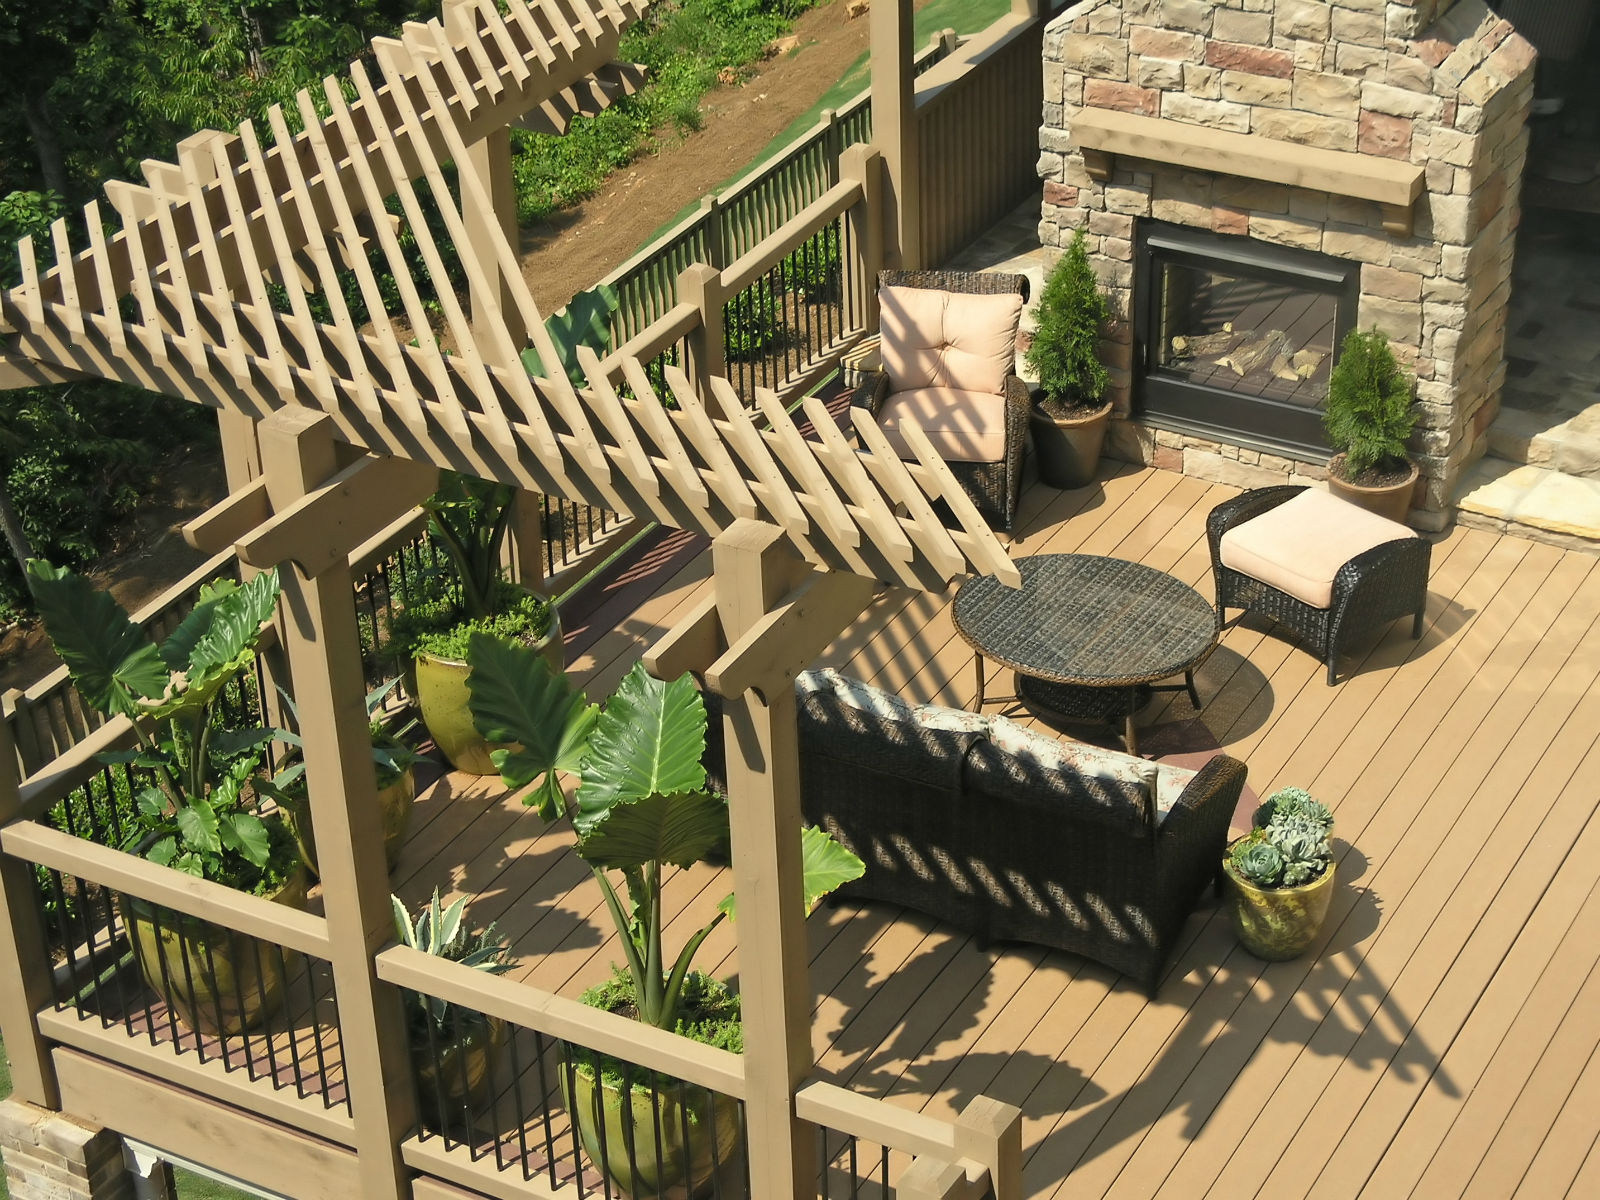 Landscaping Ideas: Top Outdoor Living Trends for 2012 on Outdoor Living Companies Near Me id=27188